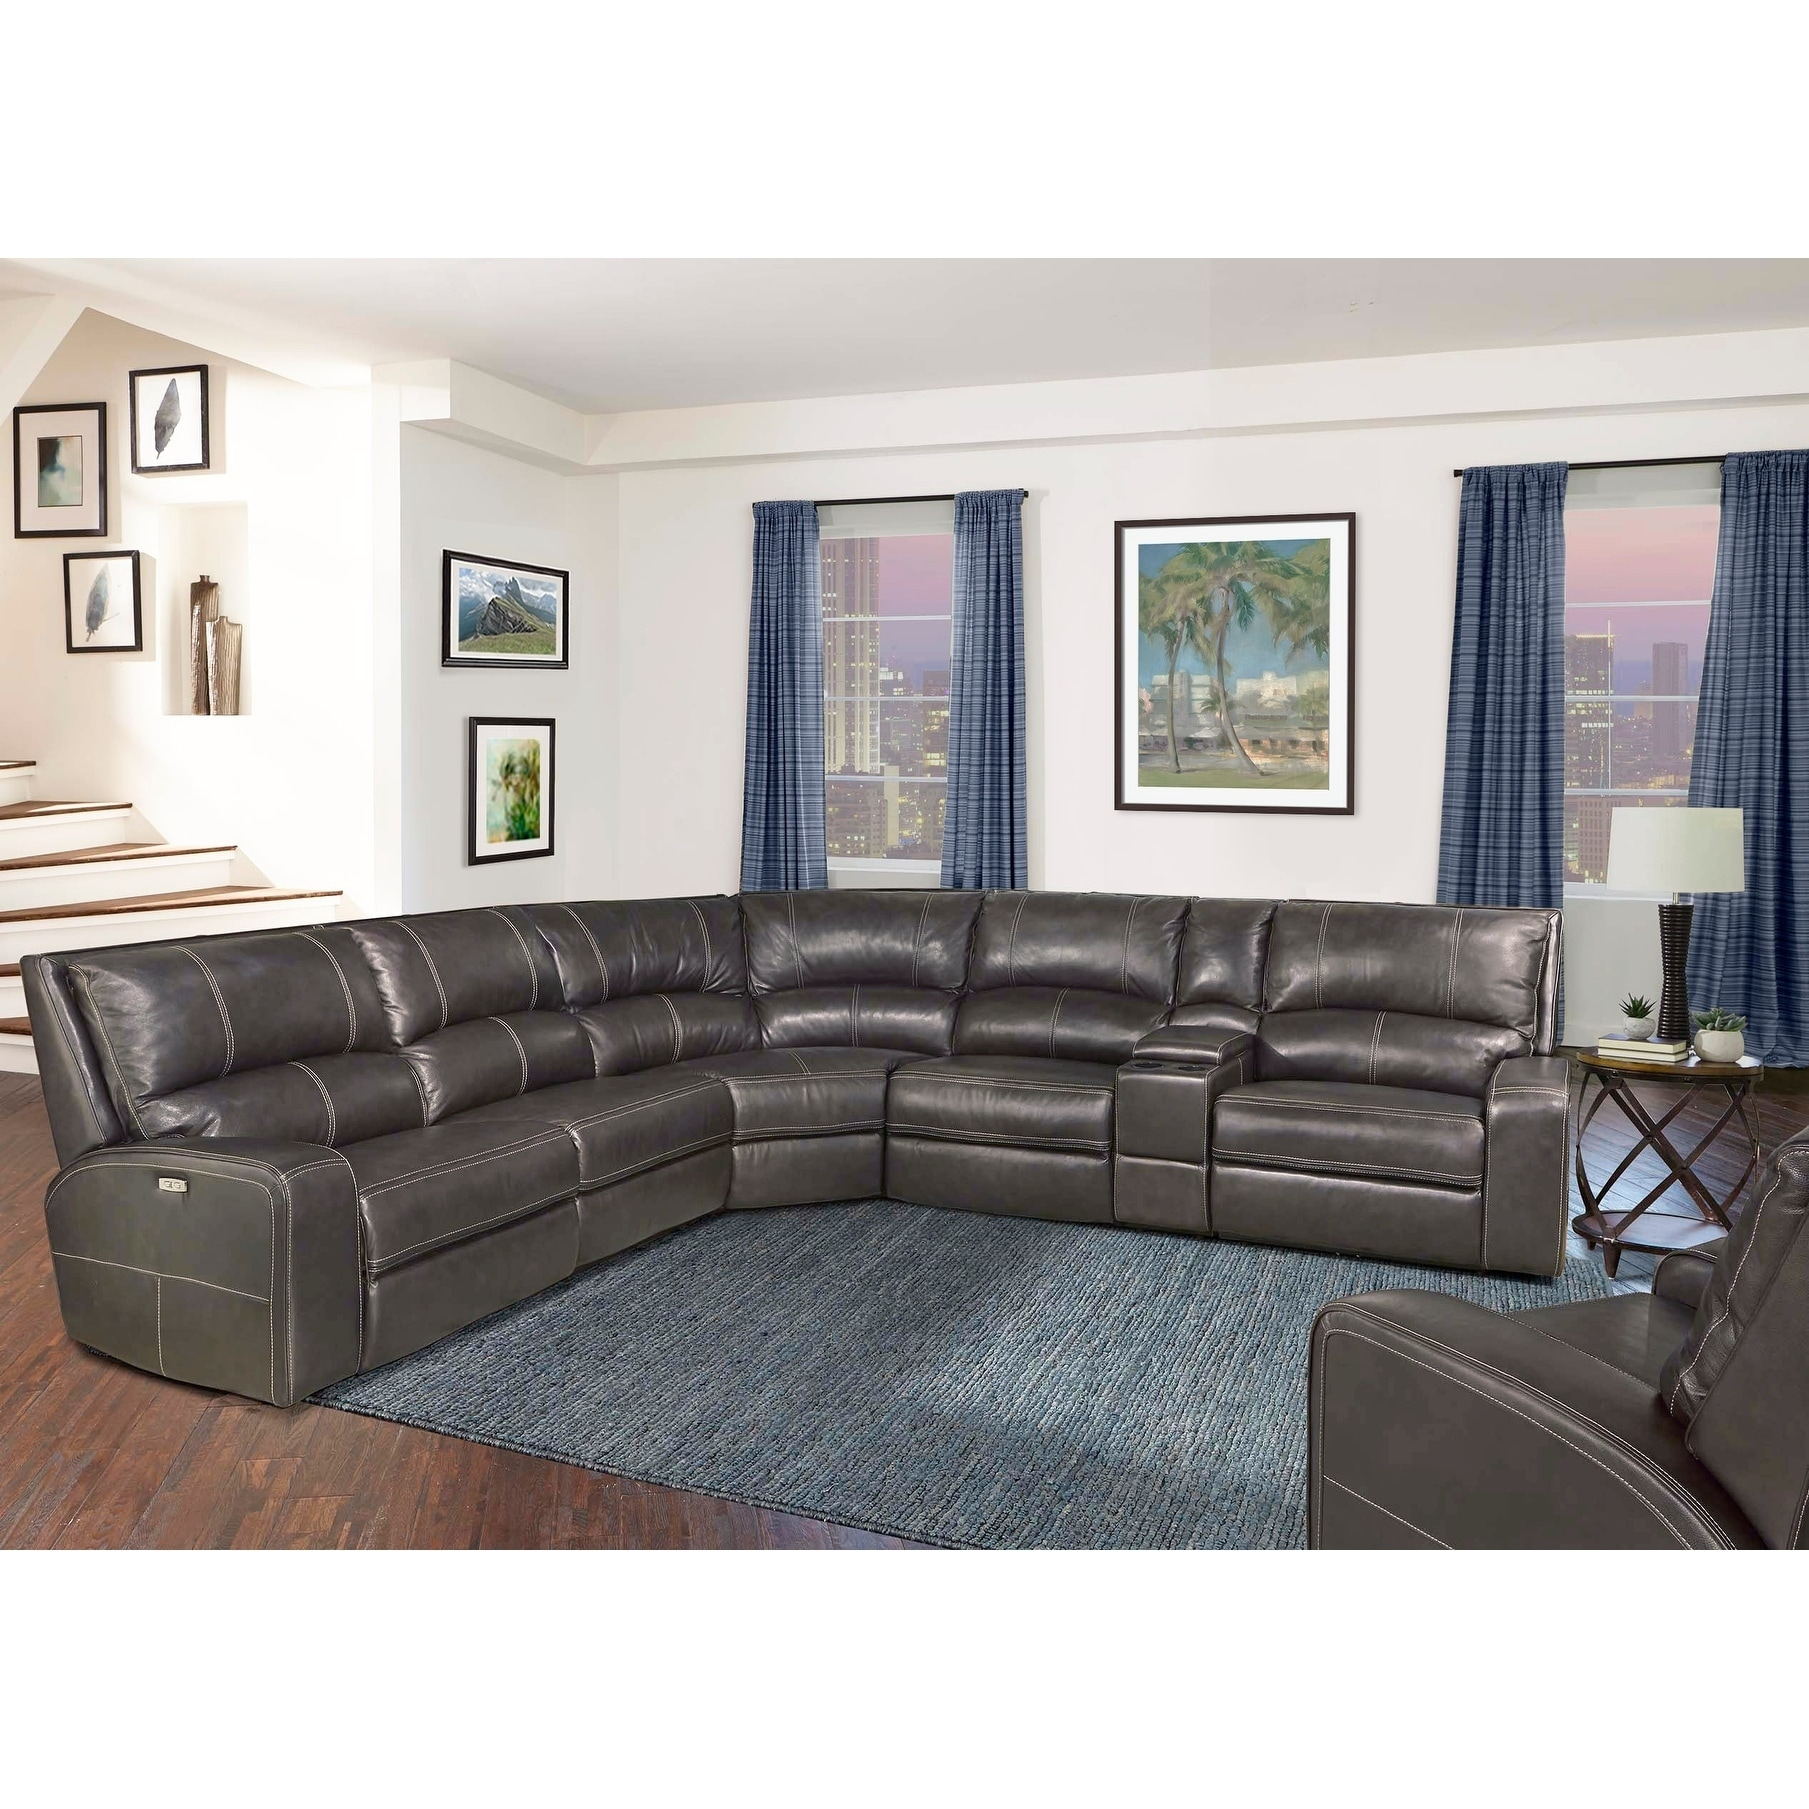 Shop symon grey top grain leather power reclining sectional and arm chair set free shipping today overstock com 22292574